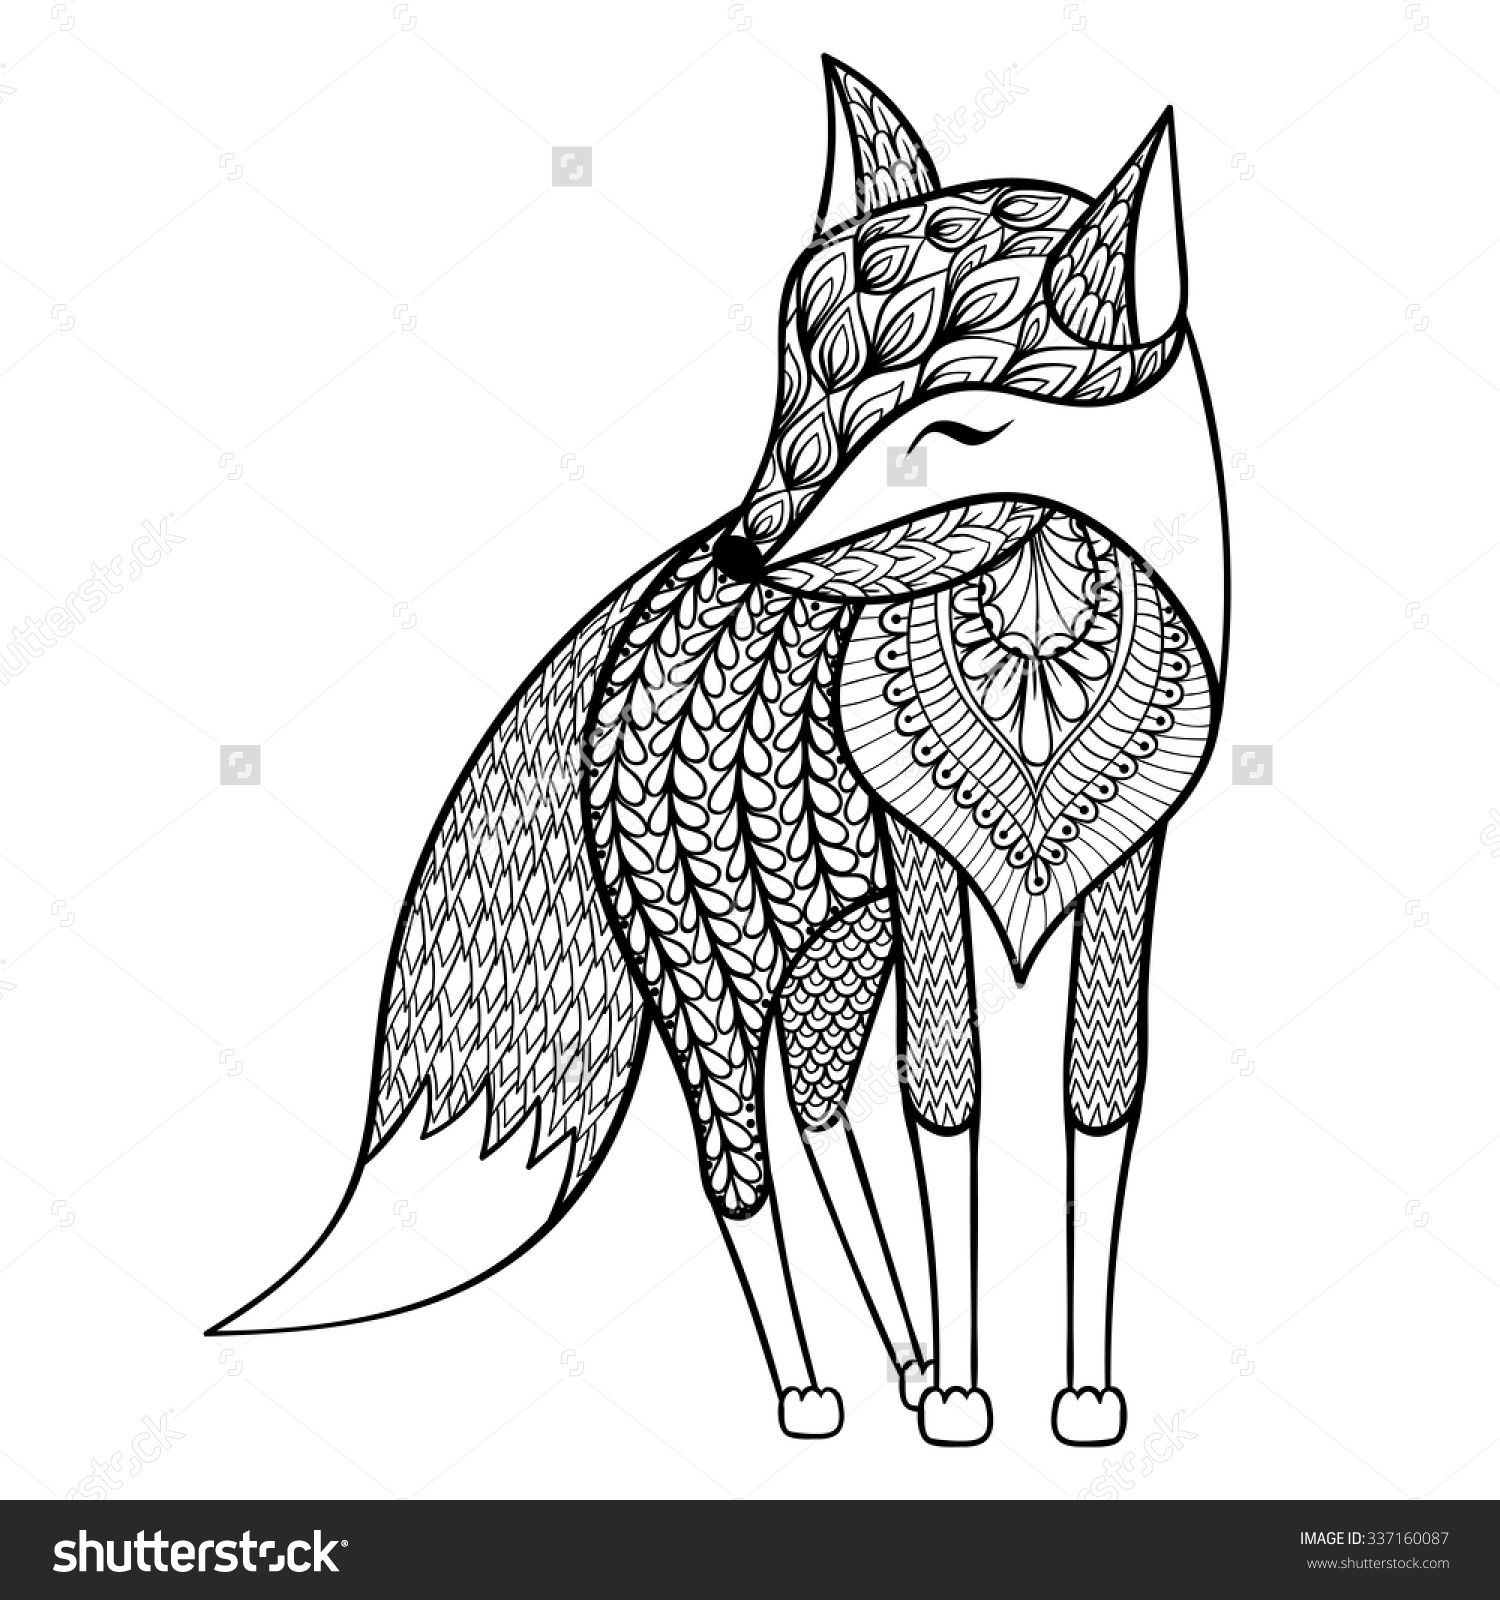 Anti stress colouring pages for adults - Zentangle Vector Happy Fox For Adult Anti Stress Coloring Pages Ornamental Tribal Patterned Illustration For